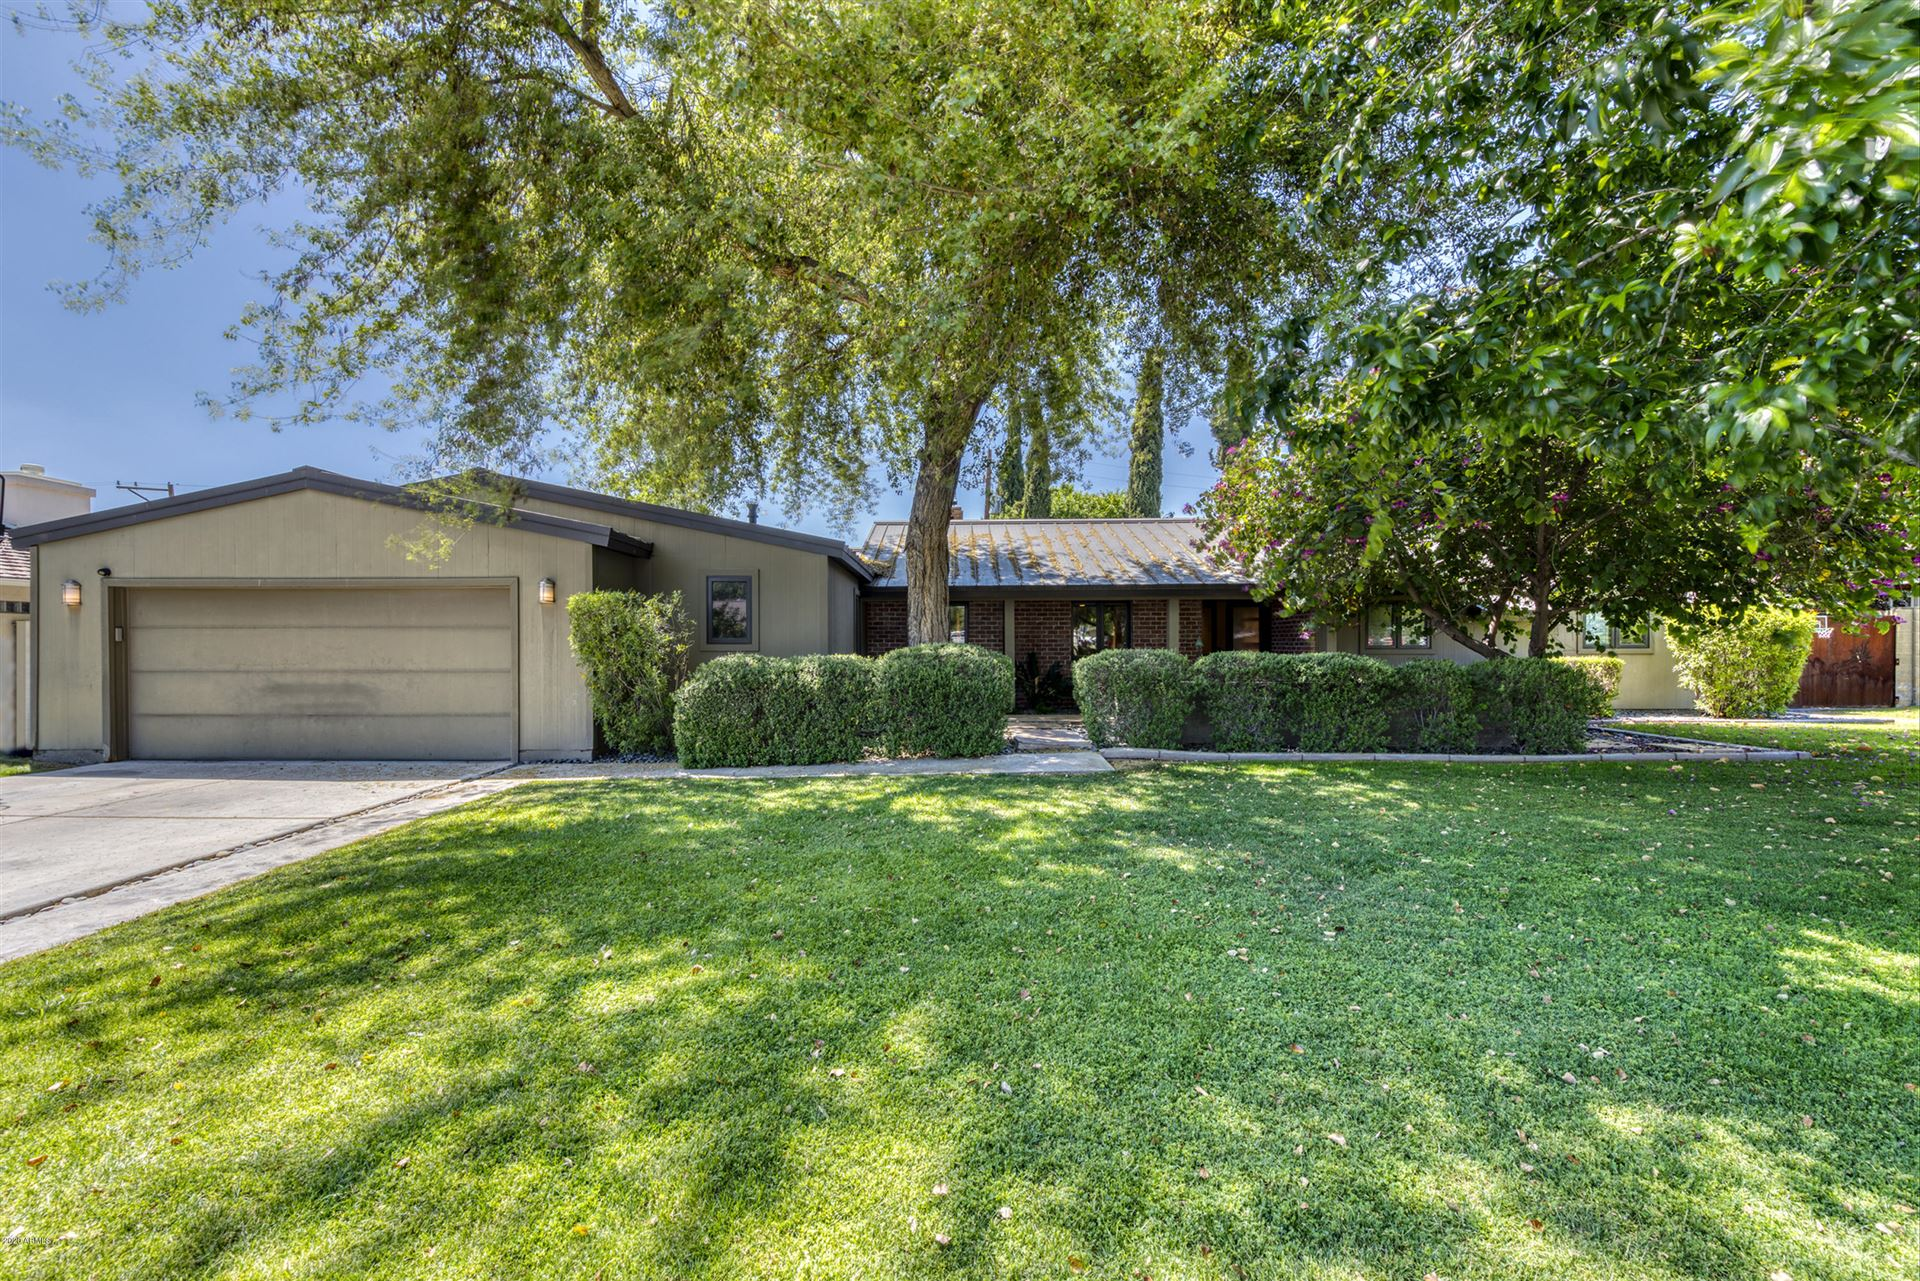 Property Image Of 6626 N 1St Place In Phoenix, Az